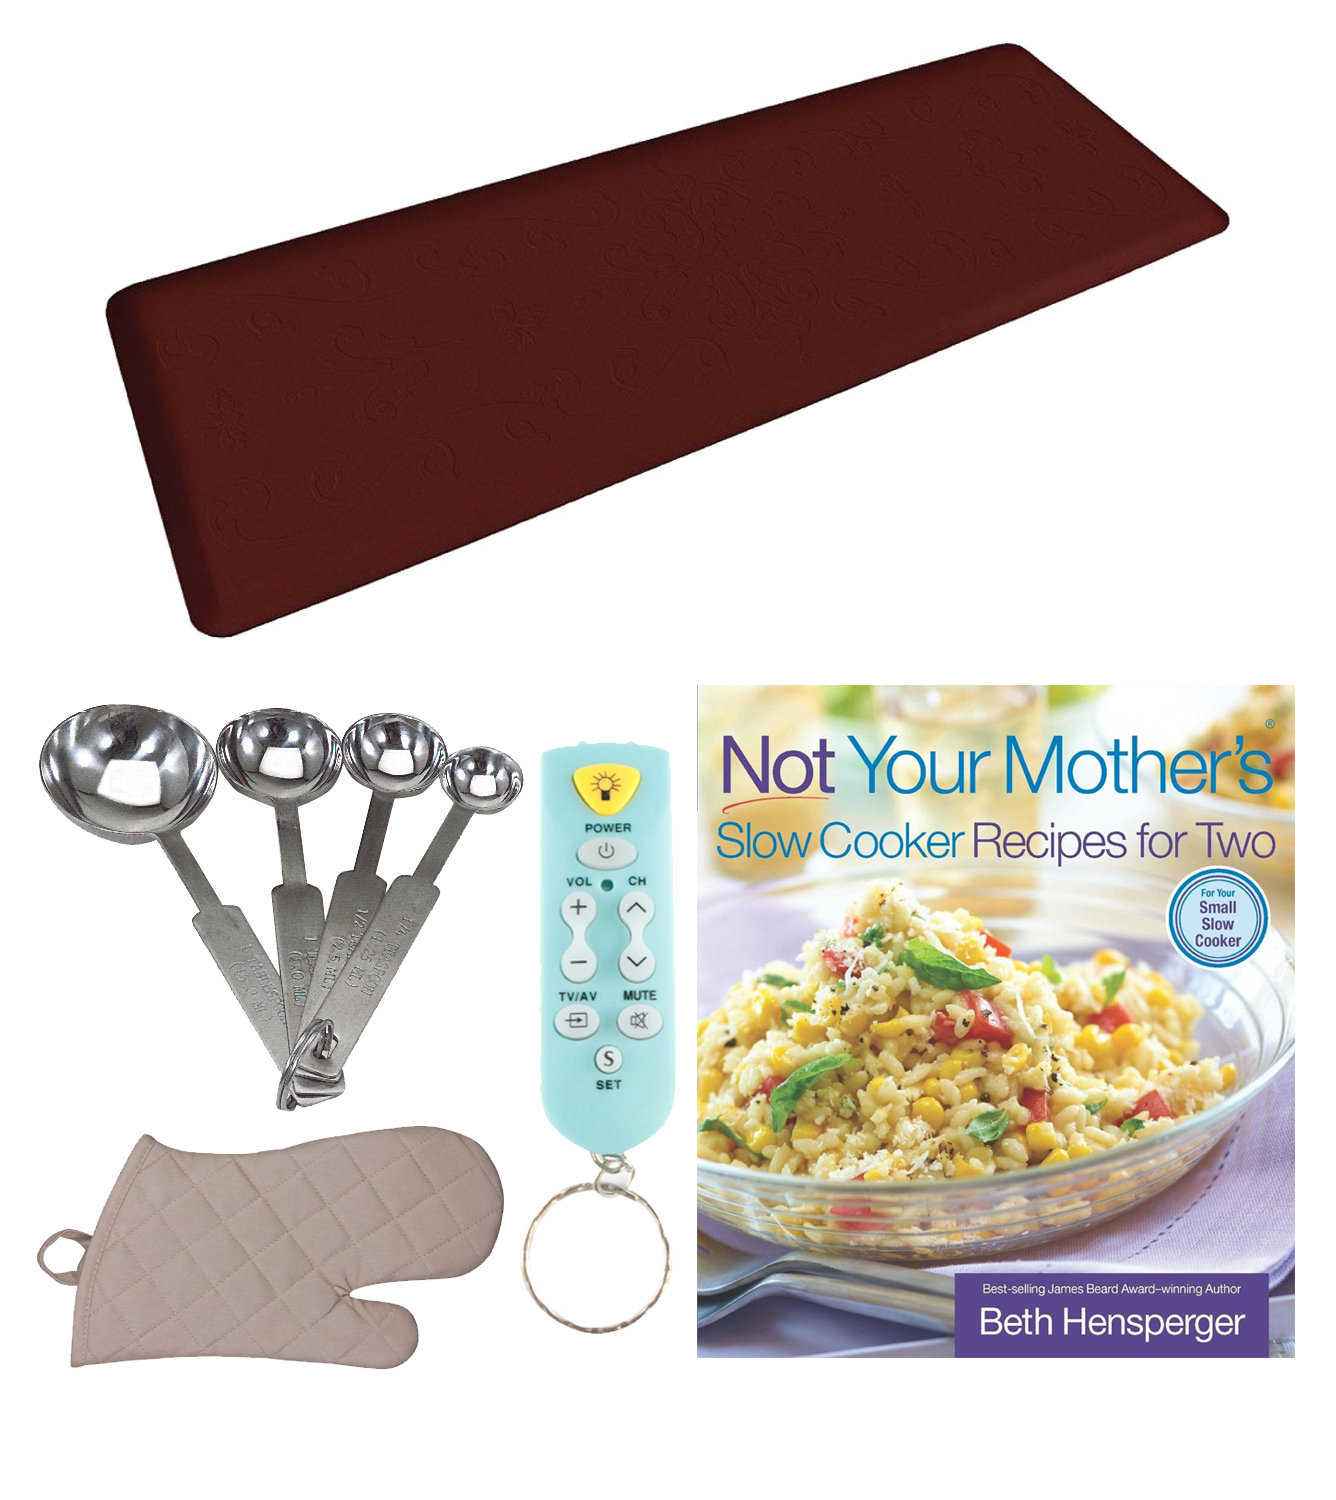 WellnessMats 6' x 2' Original Anti-Fatigue Floor Mat (Burgundy) Kitchen Bundle